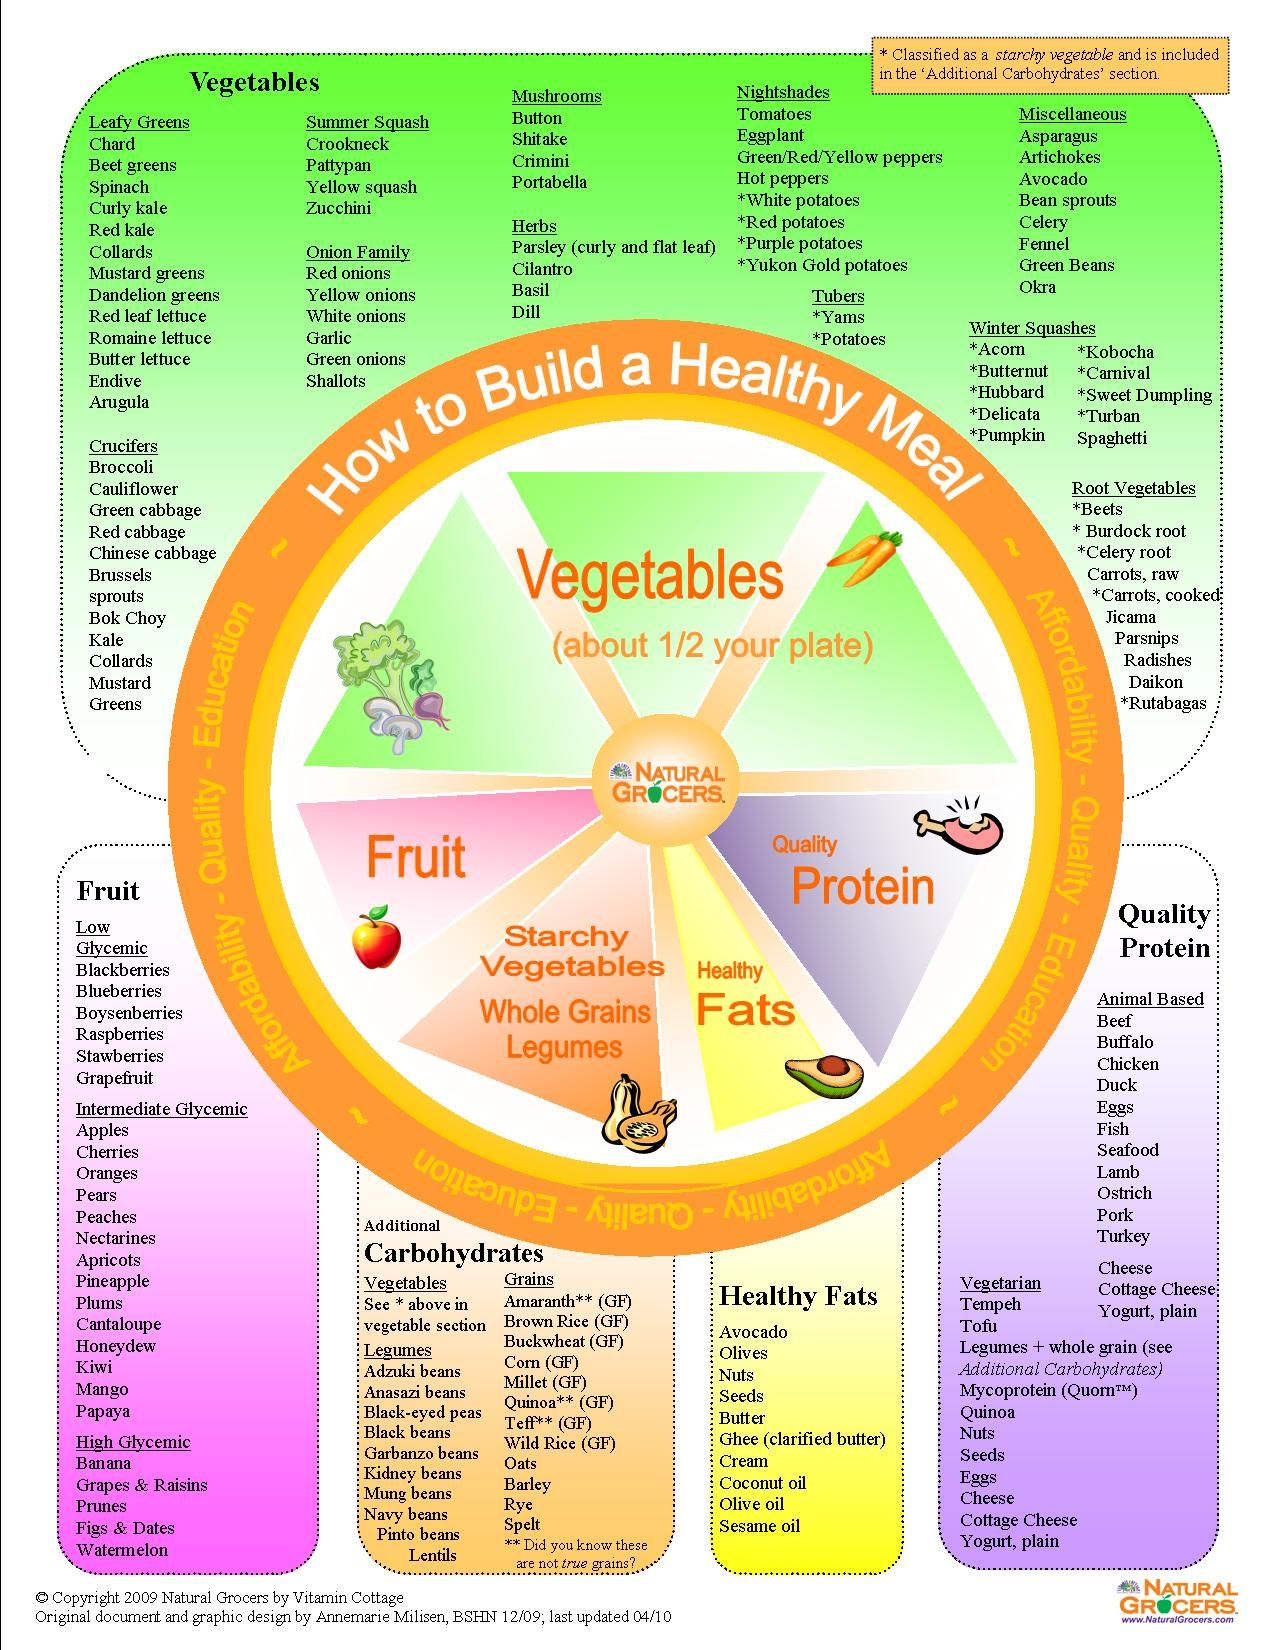 How To Build A Healthy Meal From Natural Grocers